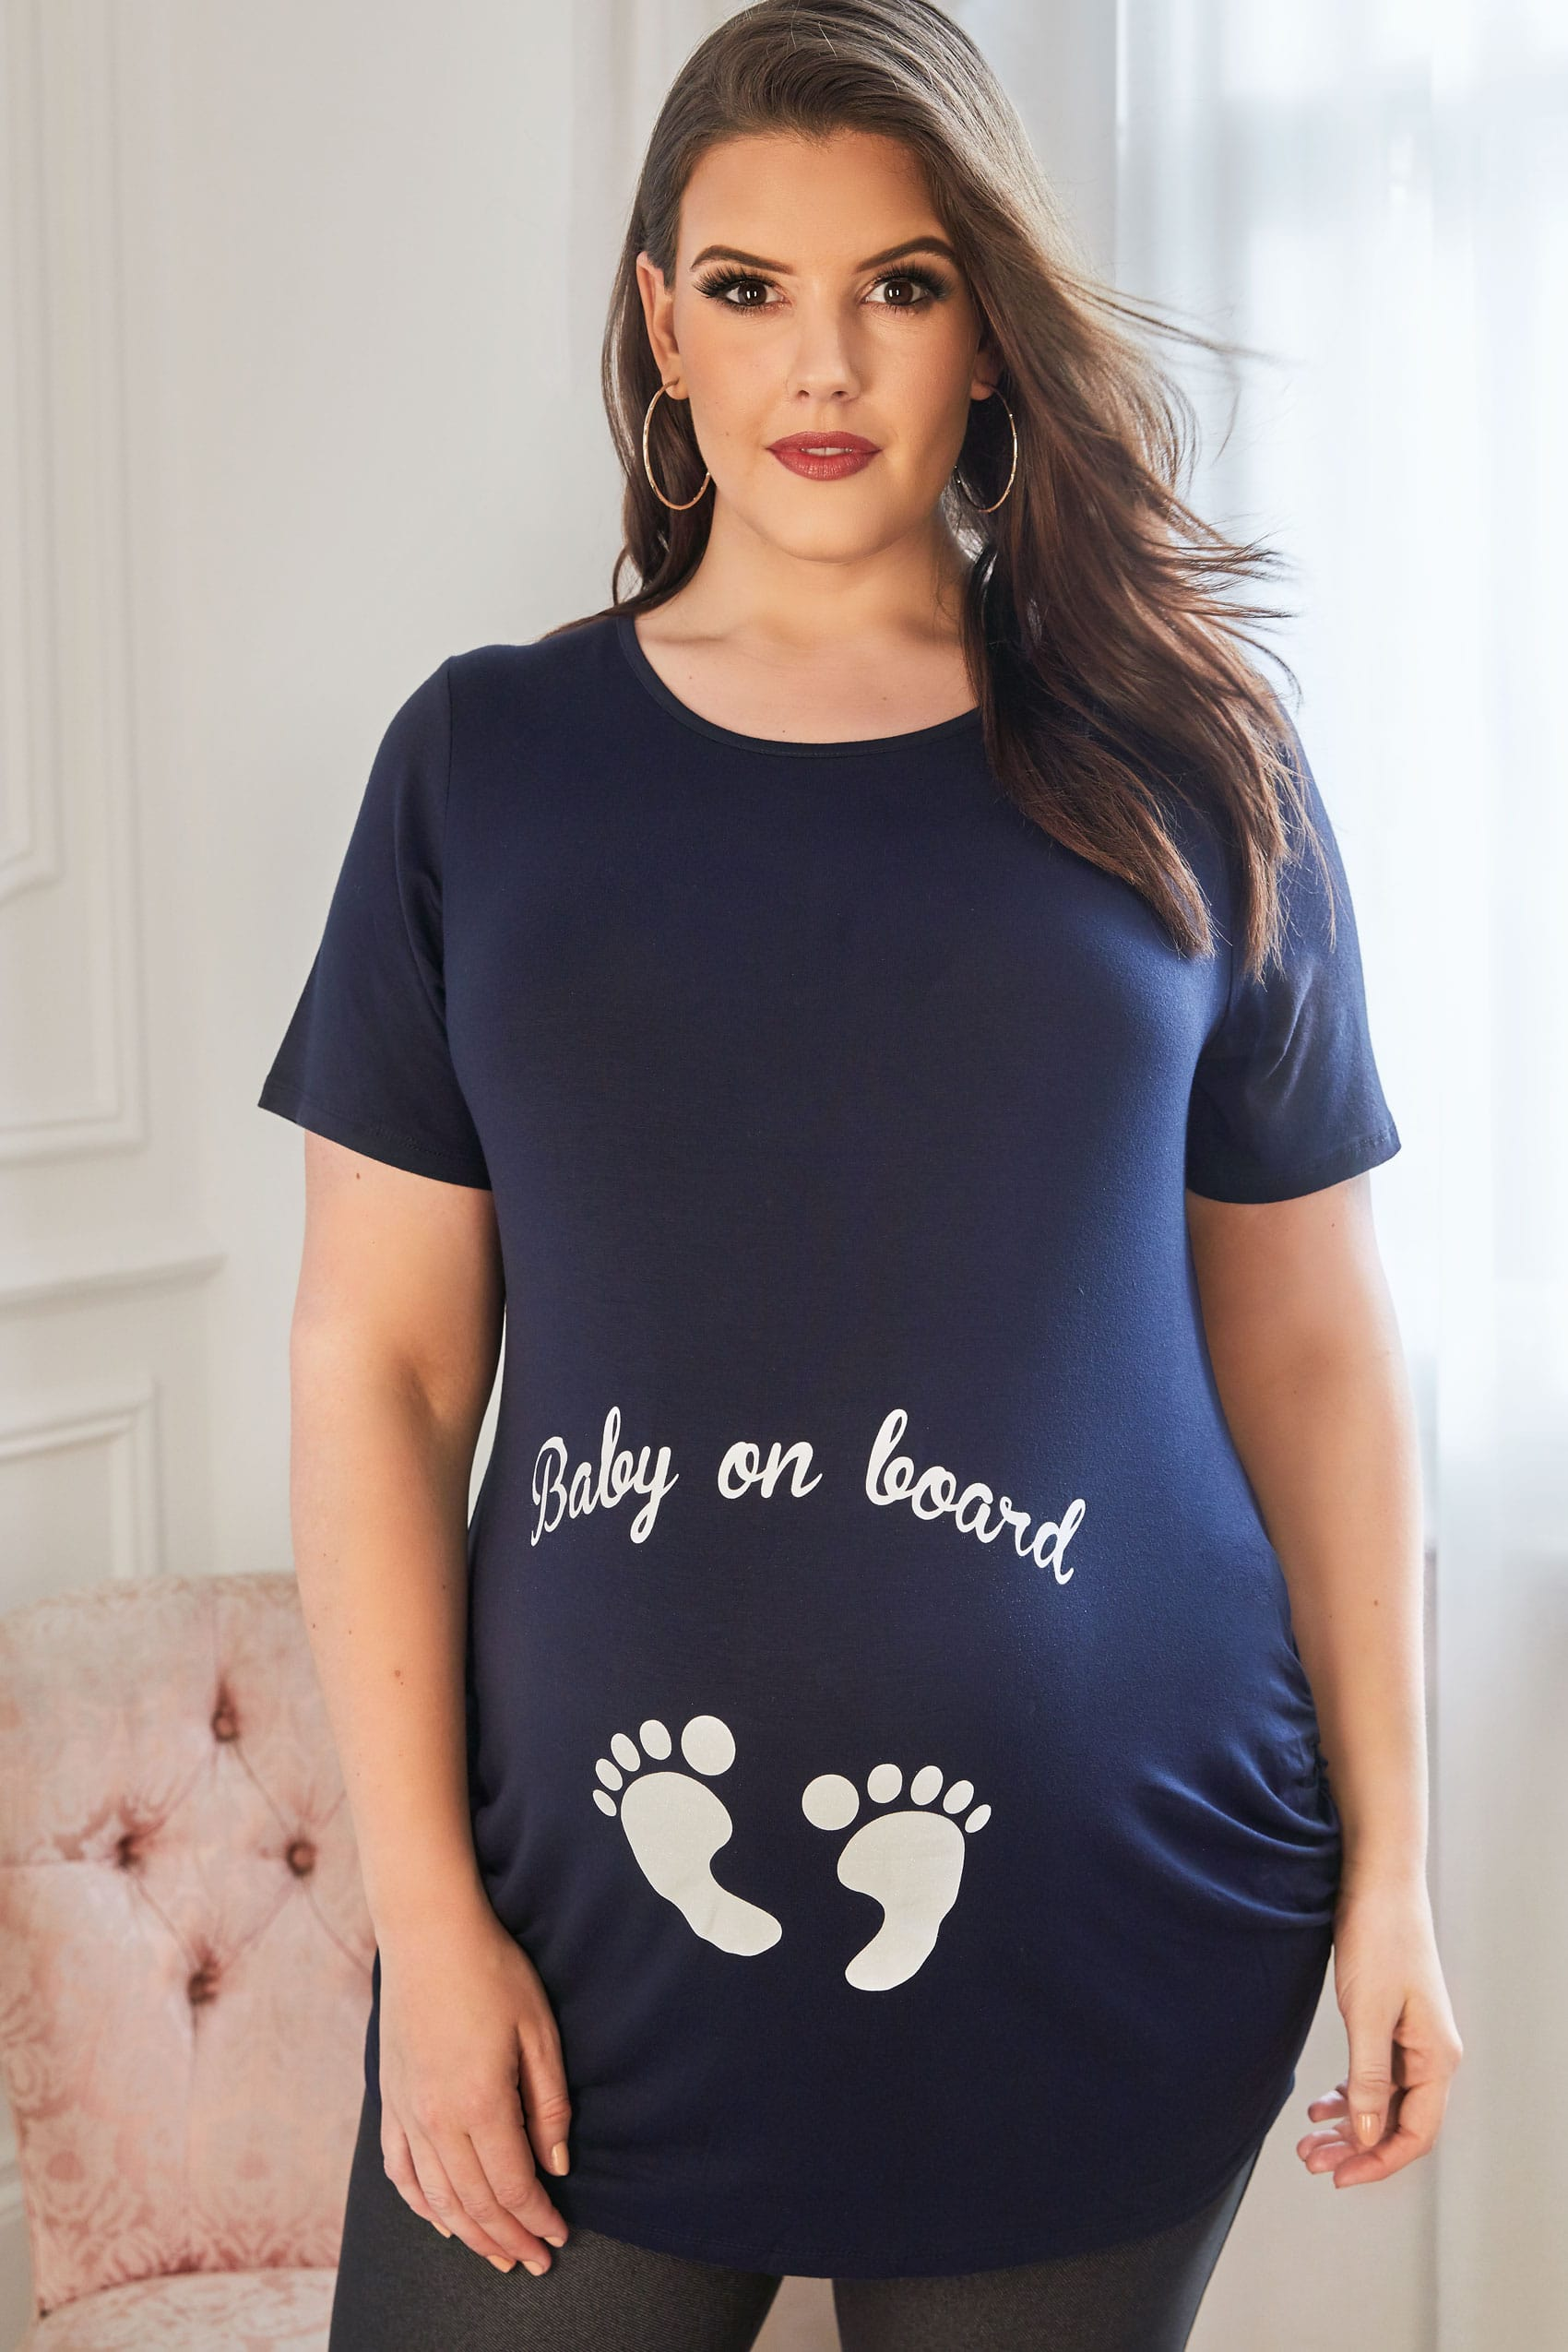 Rooms: BUMP IT UP MATERNITY Navy Glittery 'Baby On Board' Top